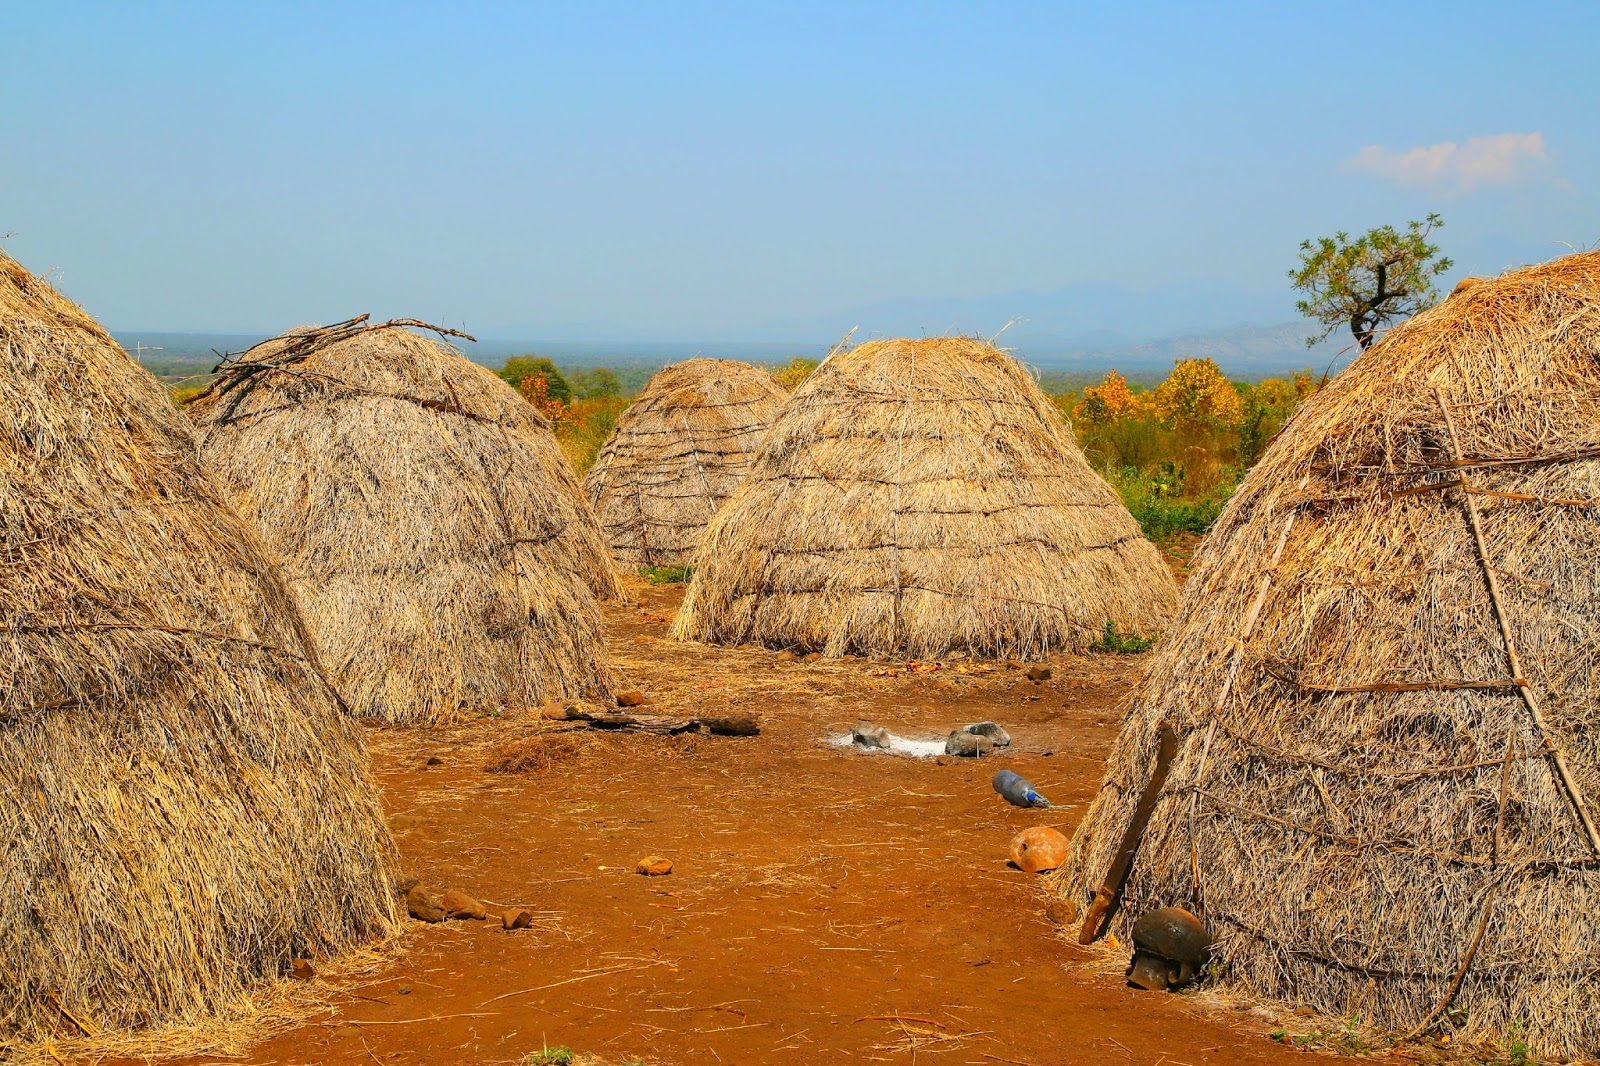 Grass Mursi Huts in the Lower Omo Valley